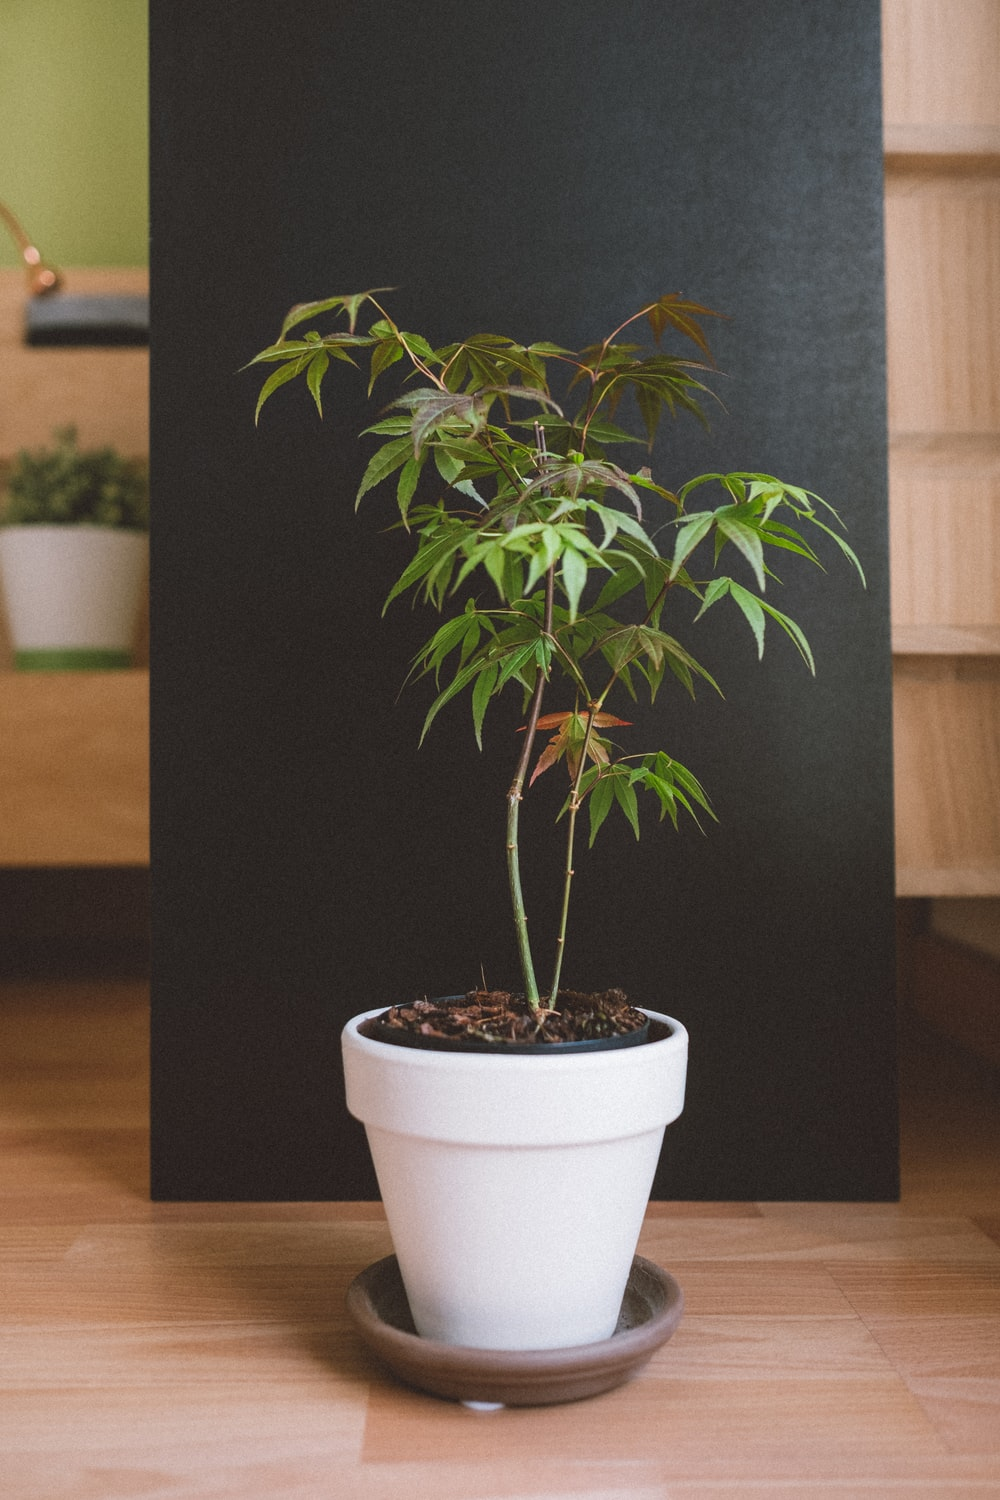 photo of cannabis plant with pot